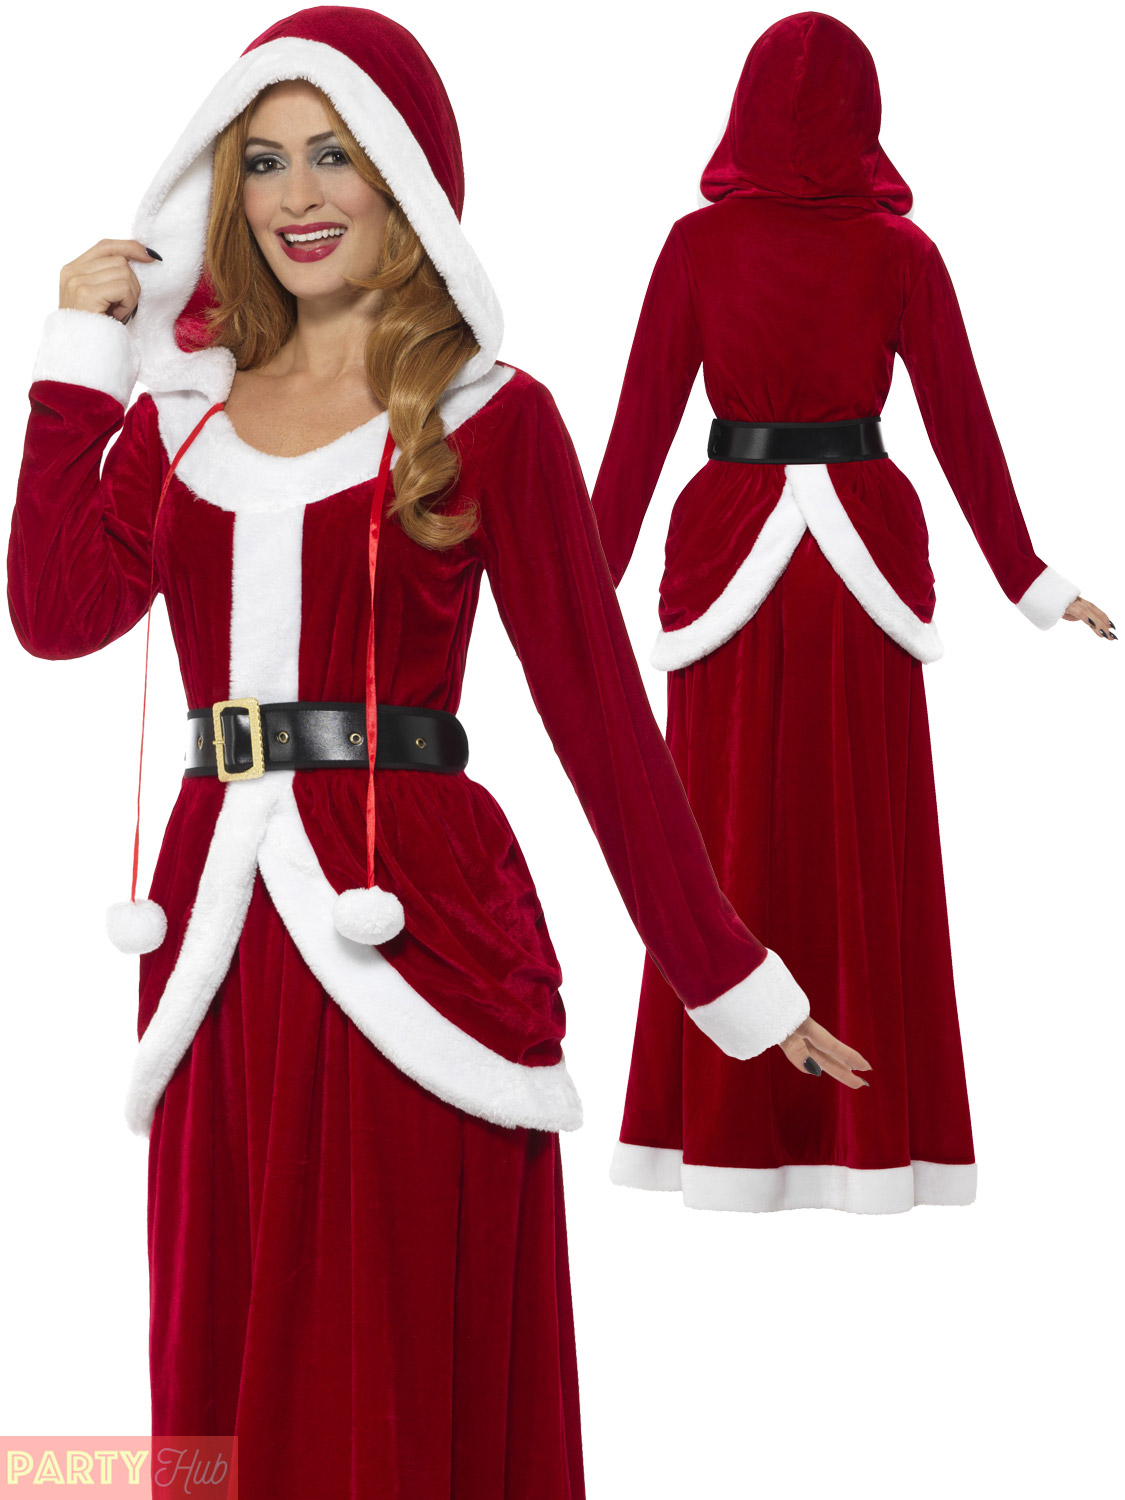 7e622a8d9439 Smiffy's 48203l Deluxe MS Claus Costume Large for sale online | eBay